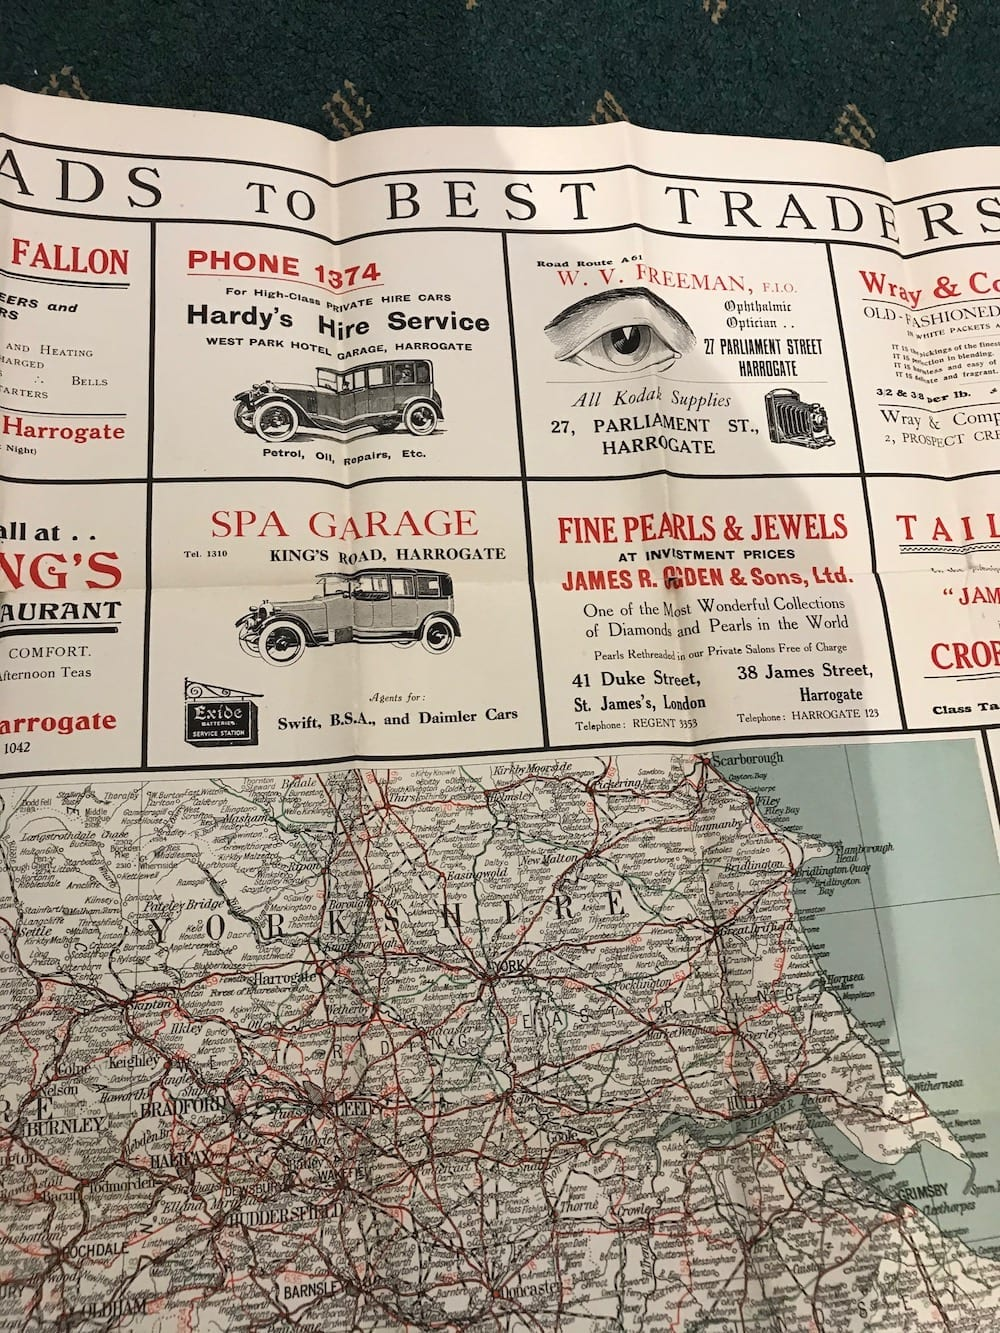 BEST ROADS TO BEST TRADERS ADVERTISING BOOKLET. - Vintage Motoring UK